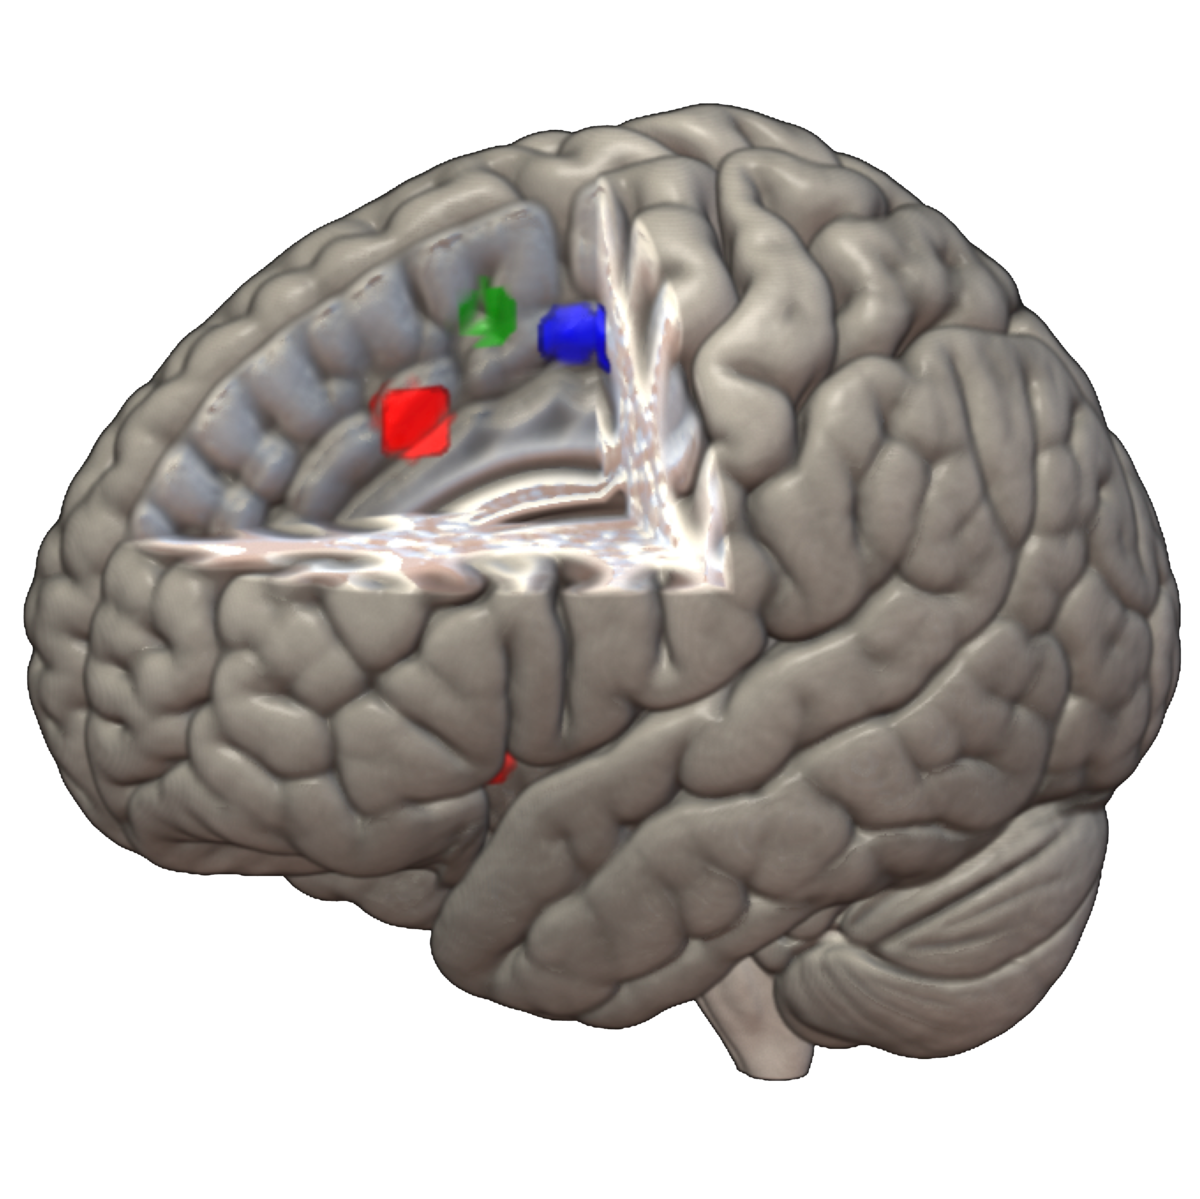 58. Nonlinear functional mapping of the human brain